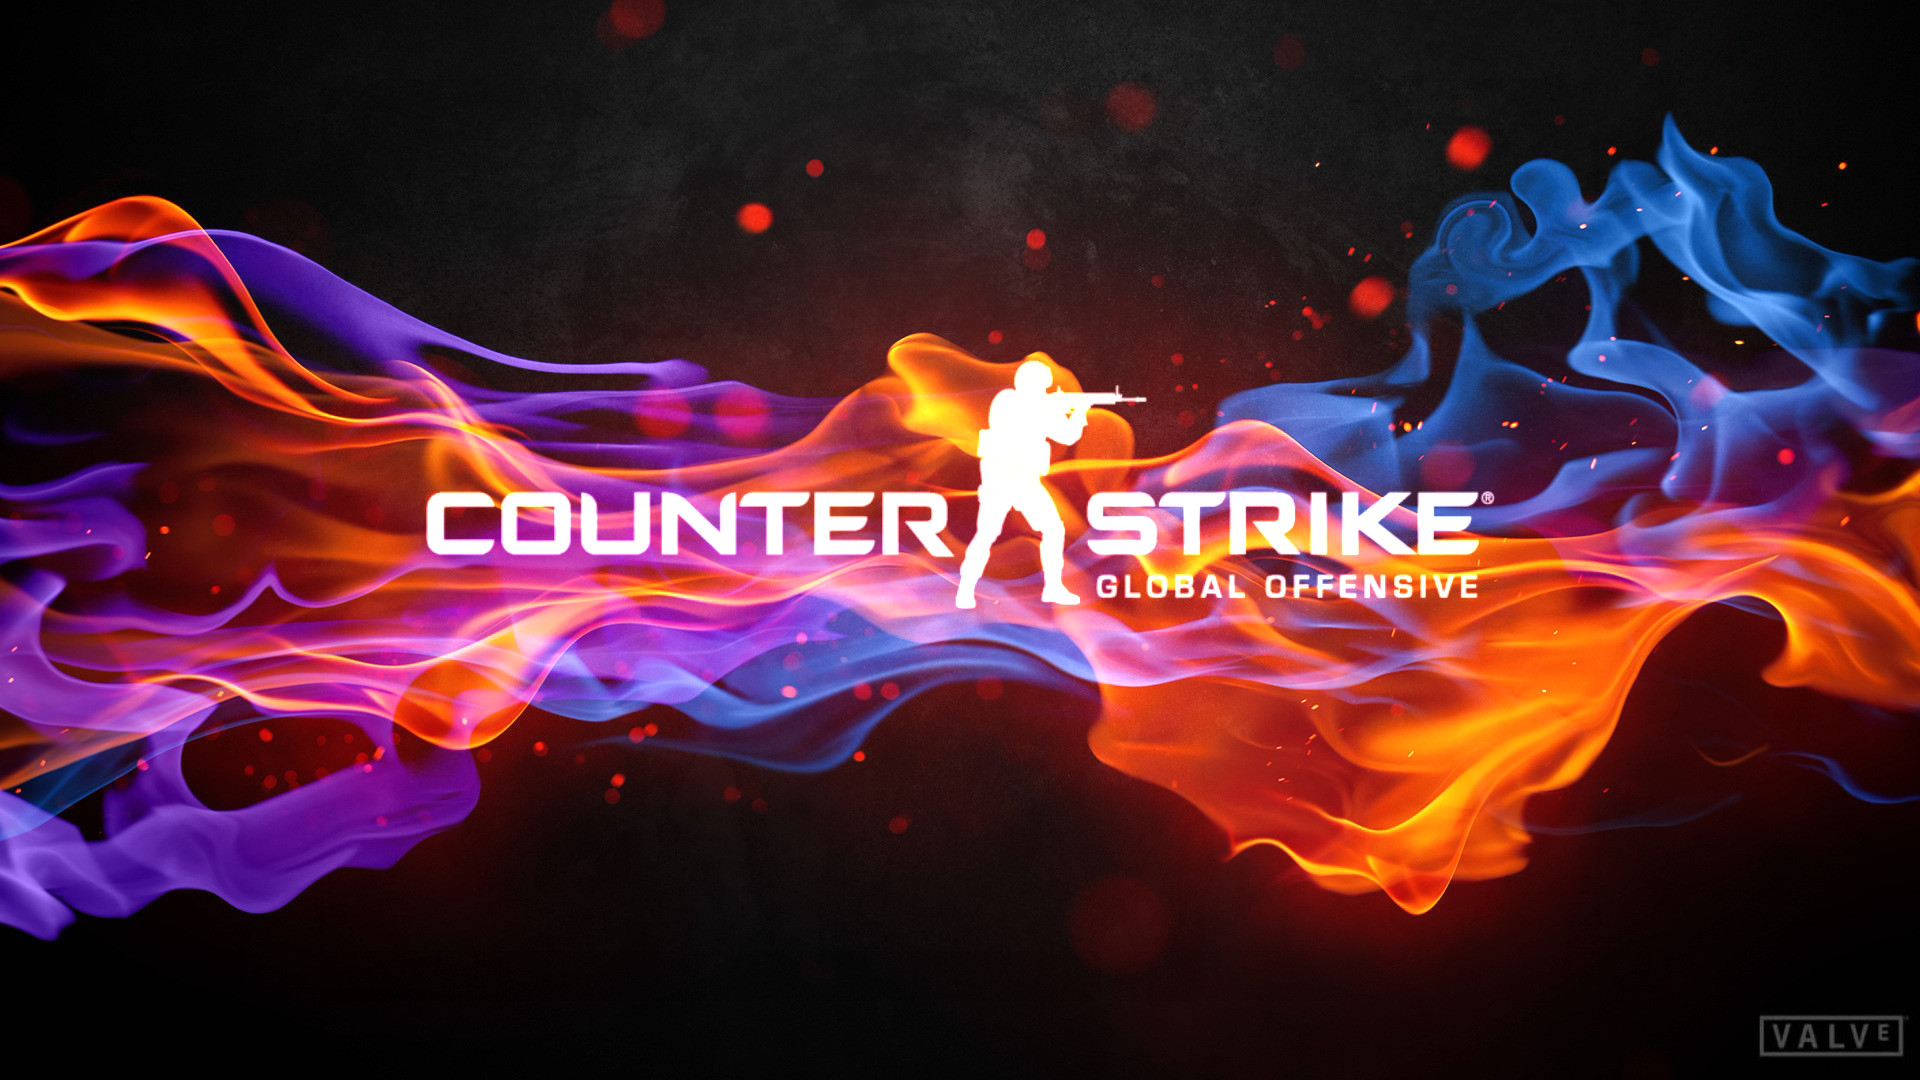 1920x1080 Counter Strike Global Offensive Wallpaper High Definition